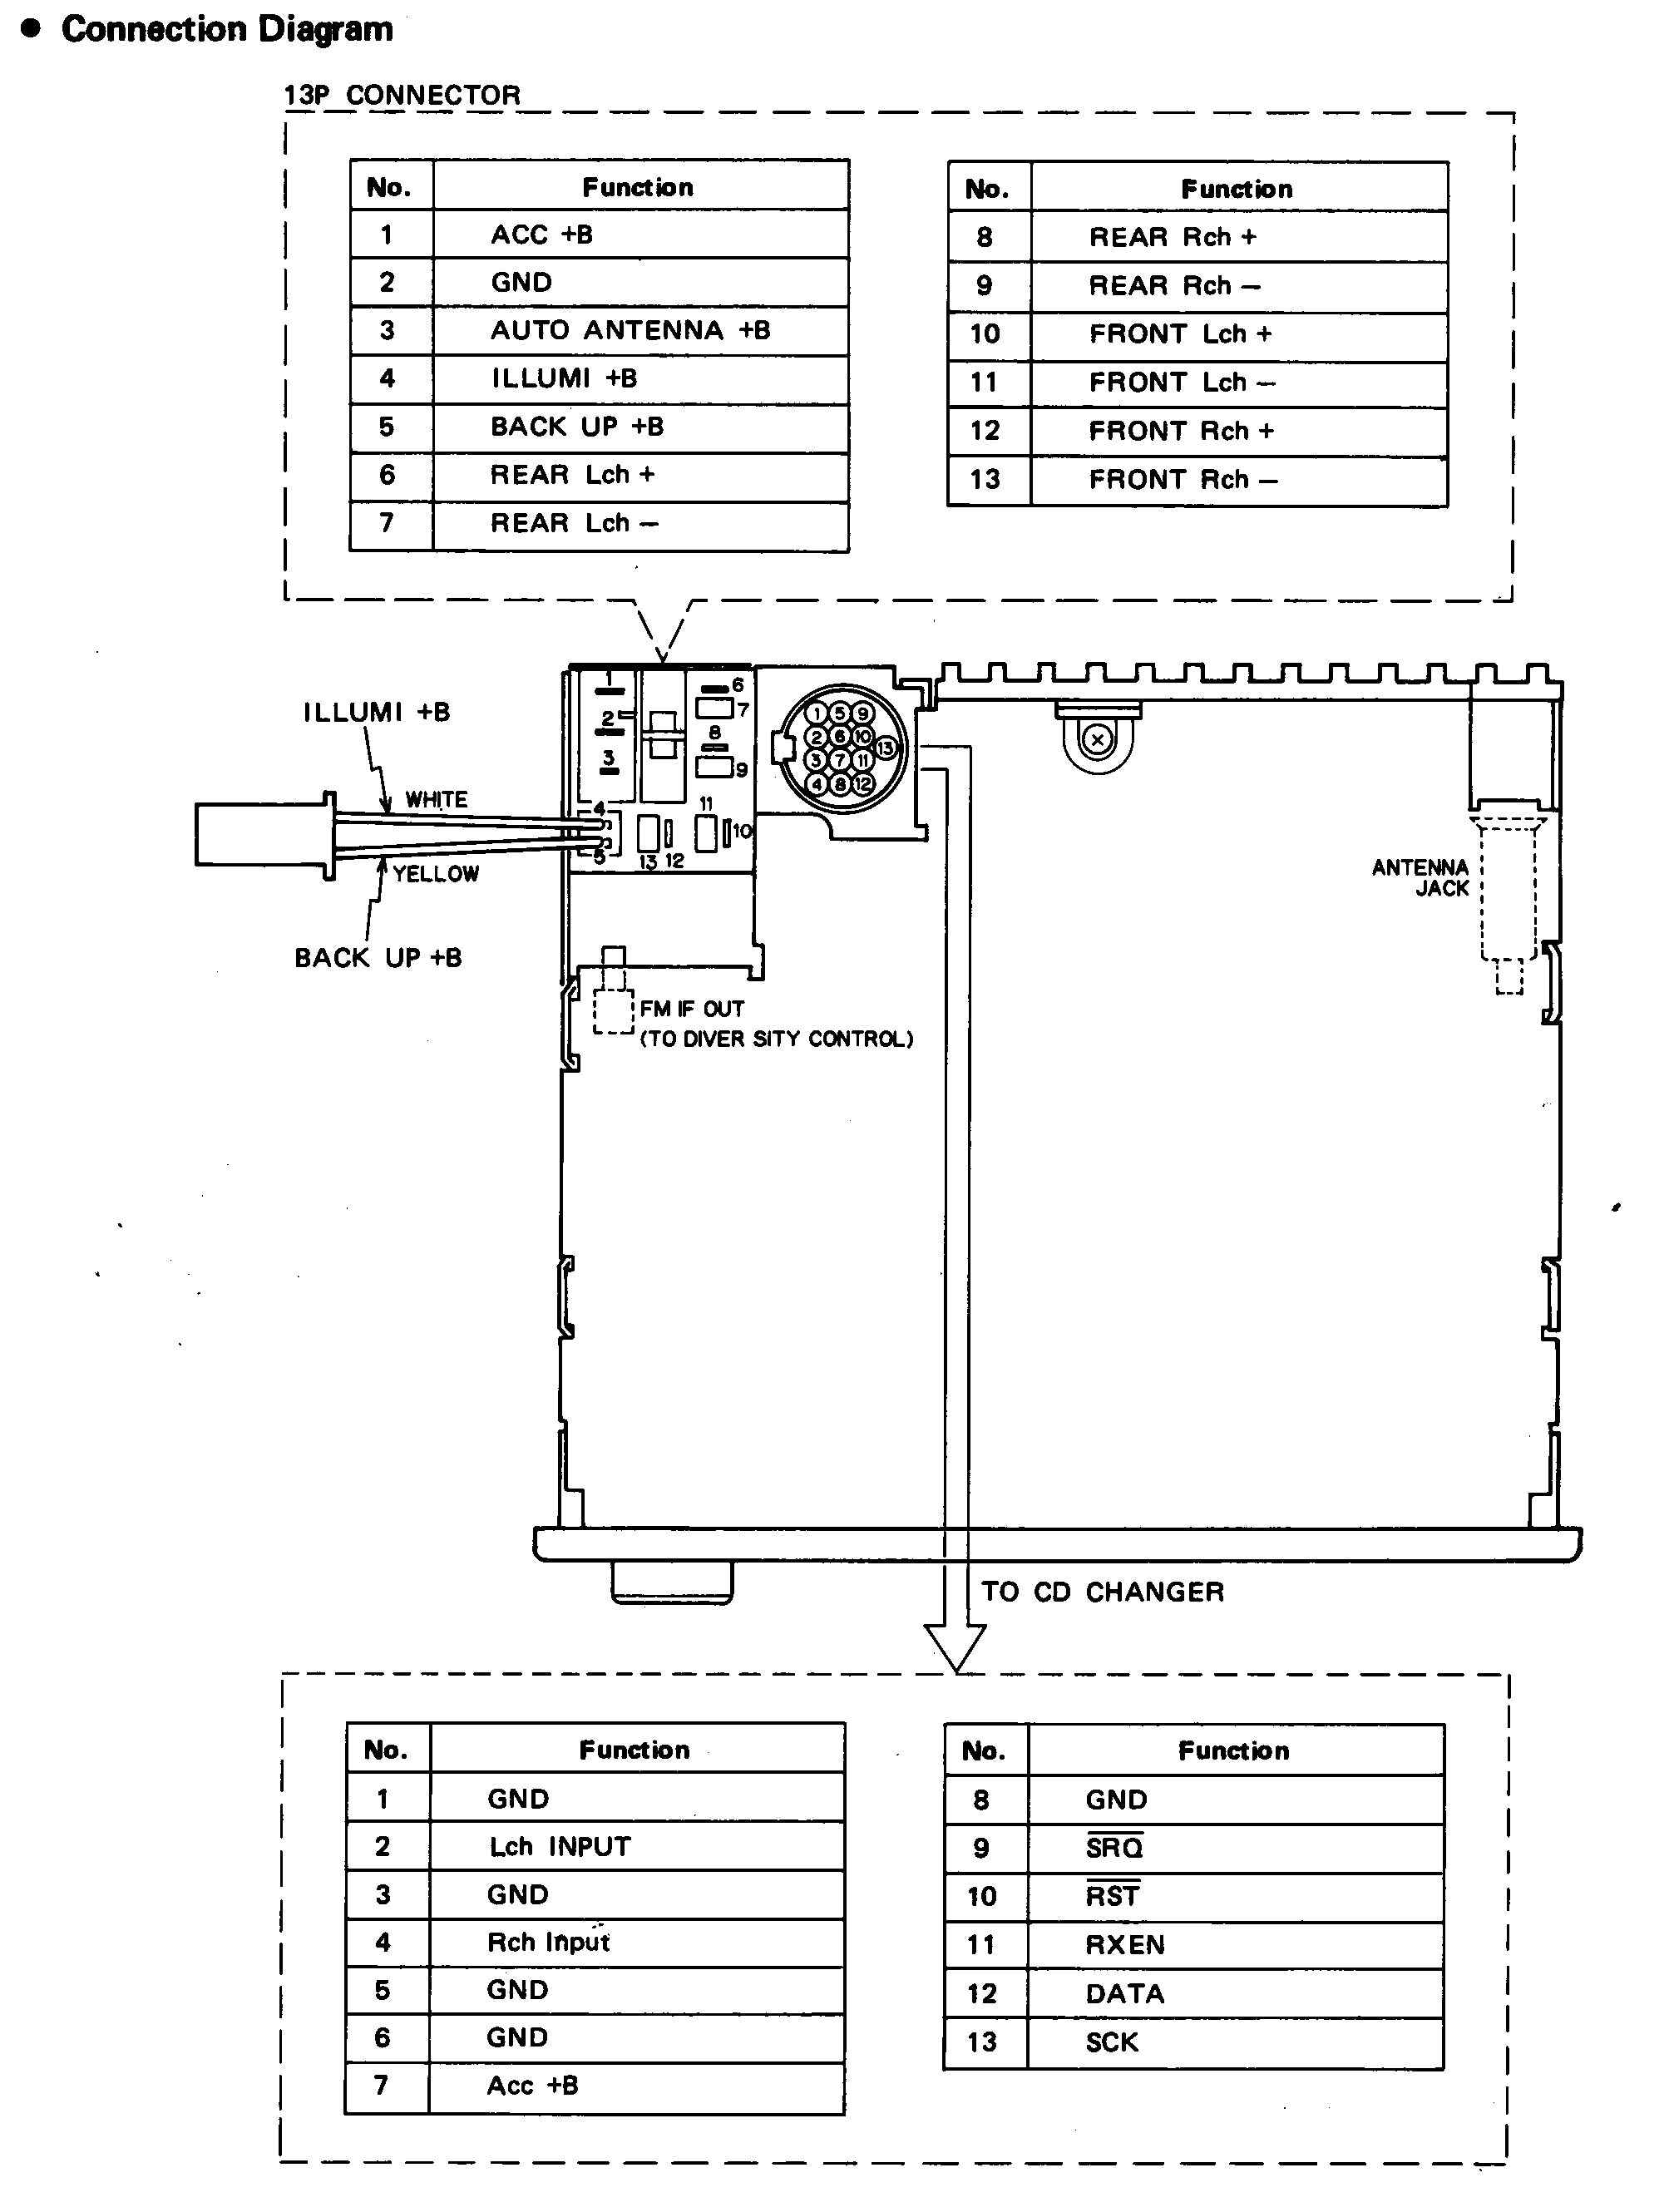 Bose Stereo Wiring Detailed Schematics Diagram 2004 F150 Factory Subwoofer Harness Car Diagrams Wire Sound